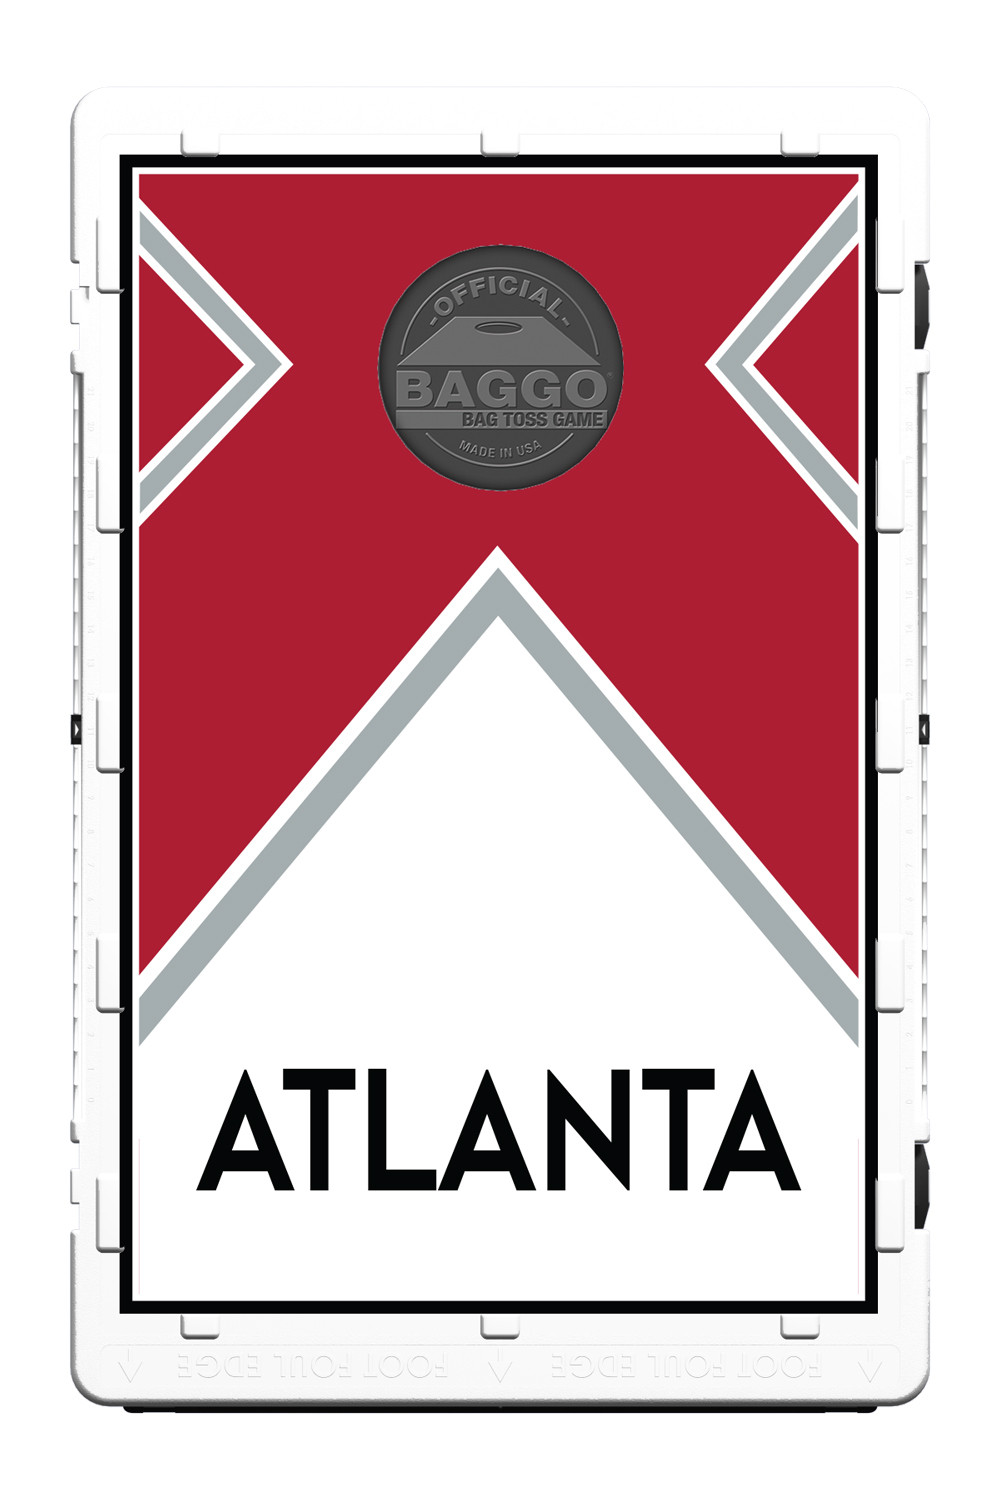 Atlanta Vintage Screens (only) by Baggo